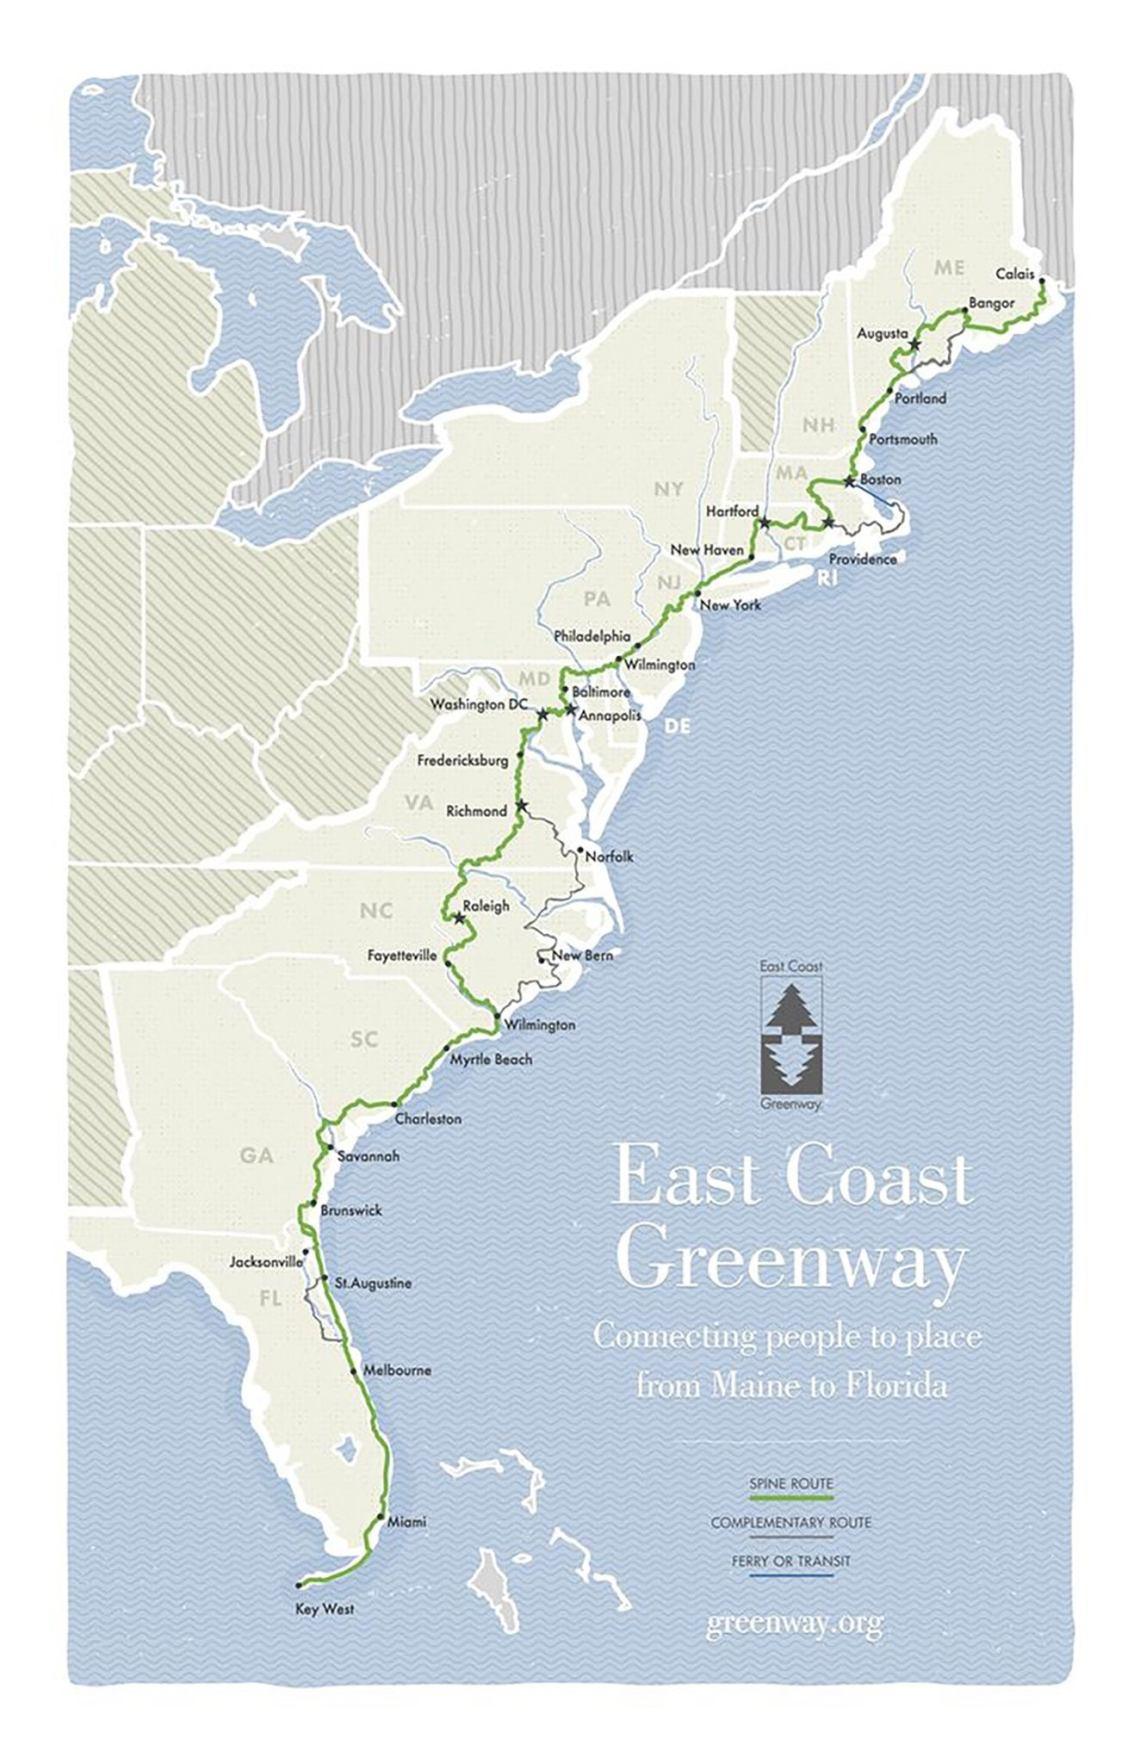 a map of the east coast greenway bike route up the atlantic seaboard